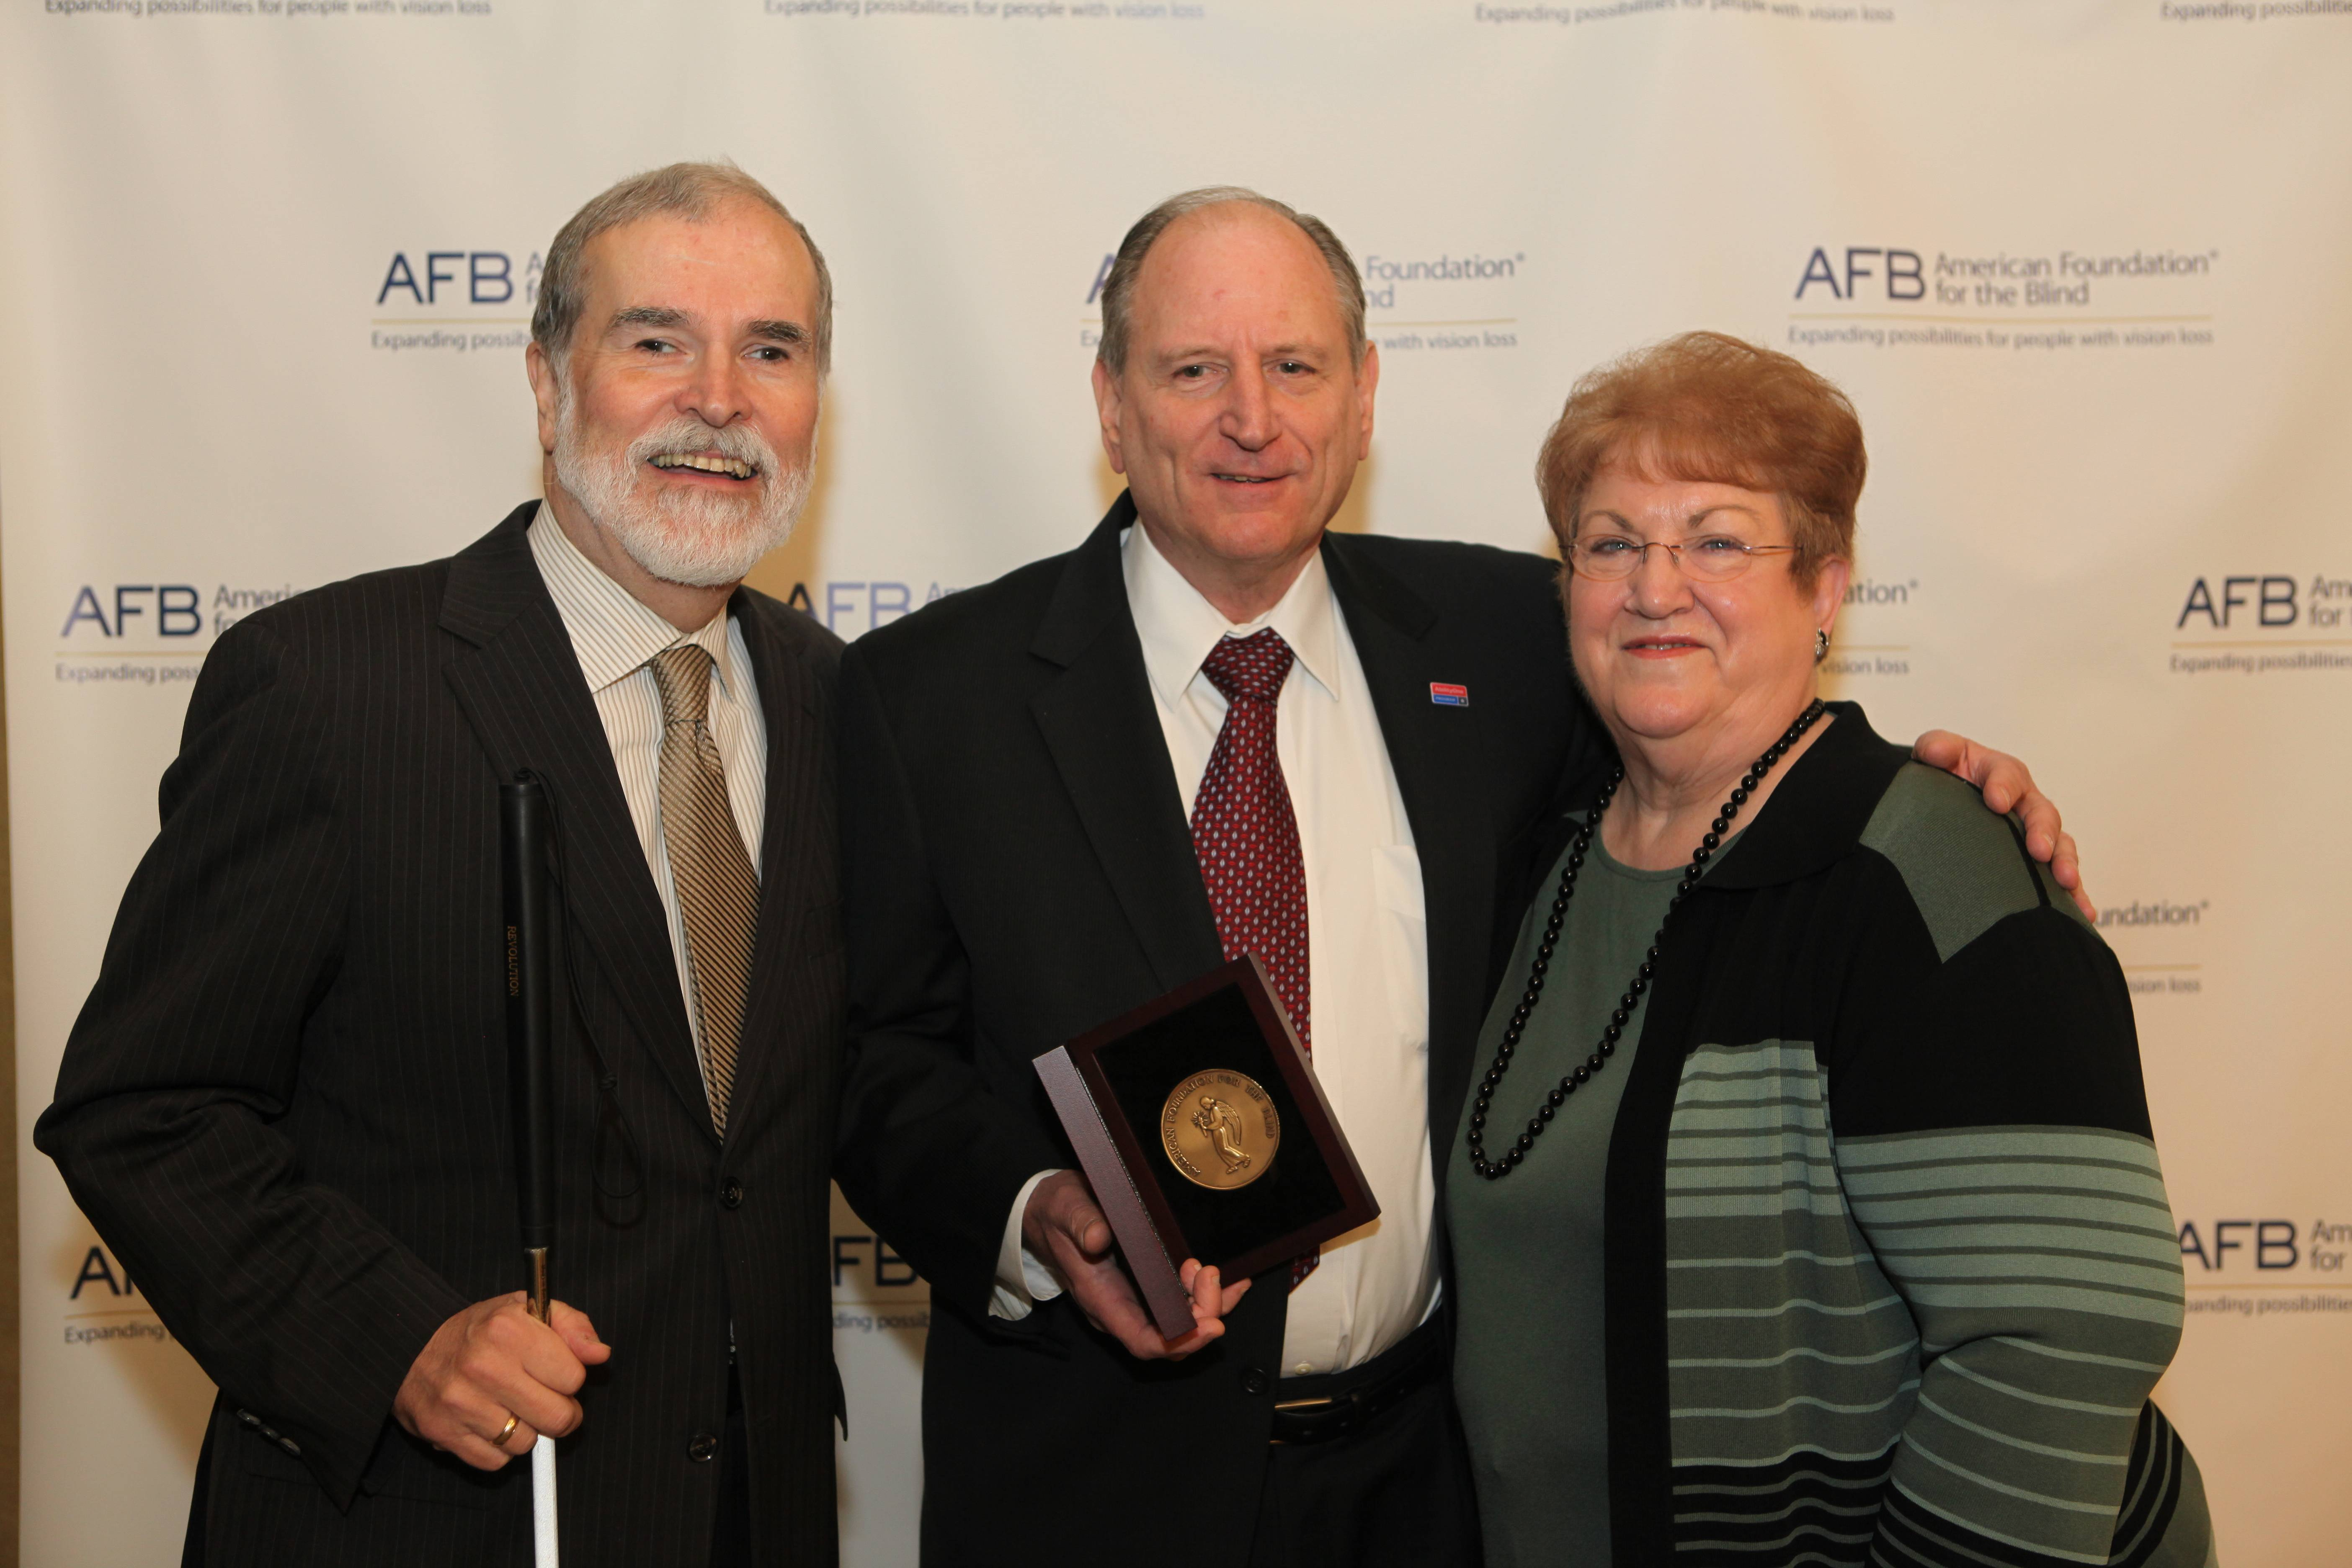 Arlington Heights resident James Kesteloot (center) poses with the prestigious Migel Award along with his wife, Barb, and Carl Augusto, president and CEO of the American Foundation for the Blind (AFB).(Photo courtesy of Seth Olenick for AFB)